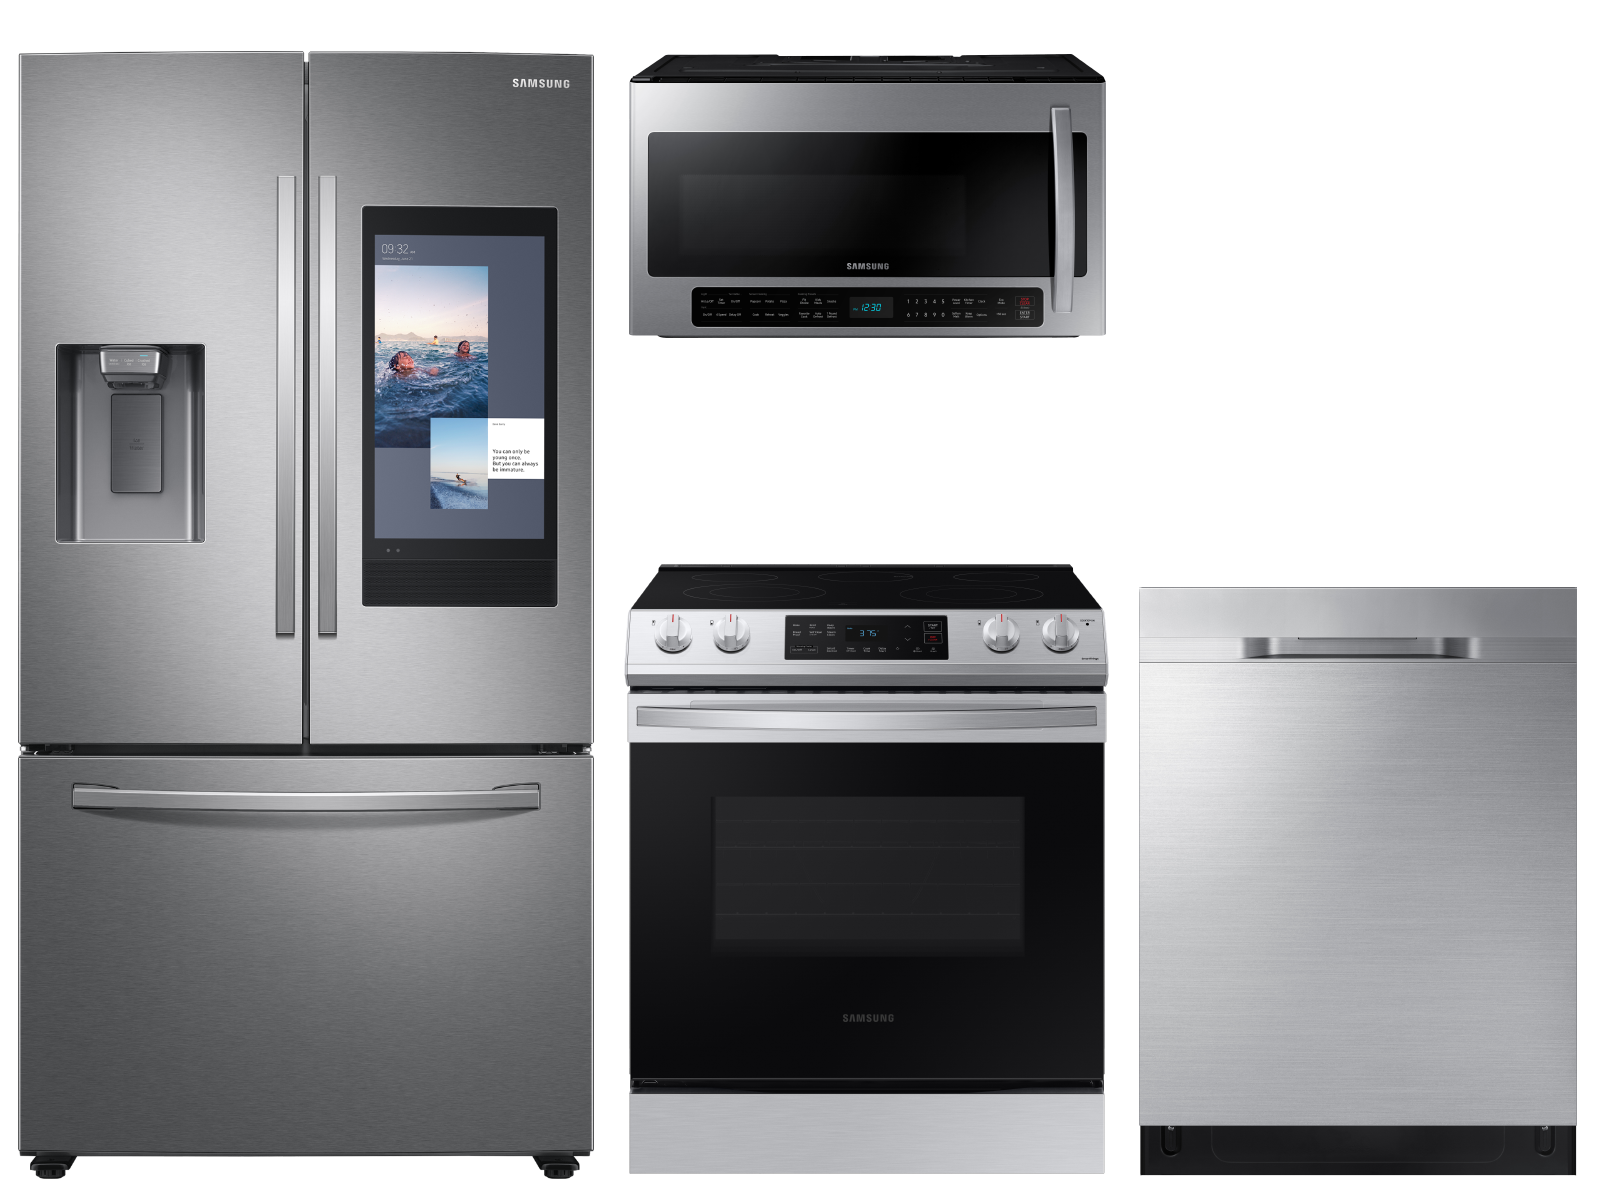 3-door Family Hub™ Refrigerator + Slide-in Electric Range with Wi-Fi +  StormWash™ Dishwasher + Microwave in Stainless Steel